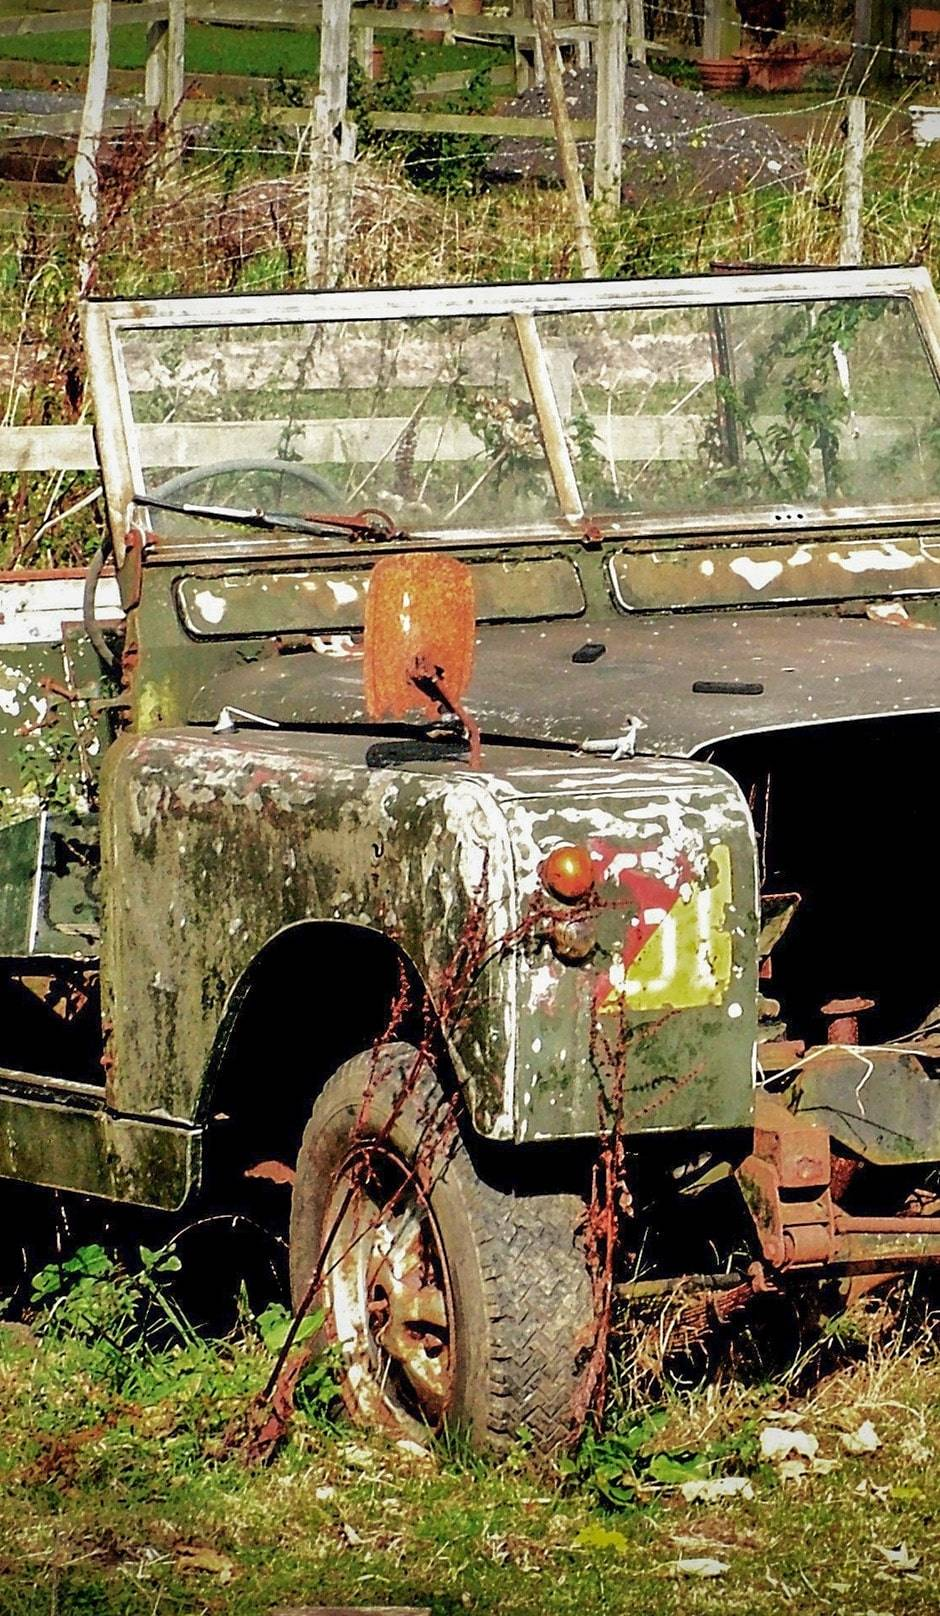 Scrapping your Land Rover with a high-end service